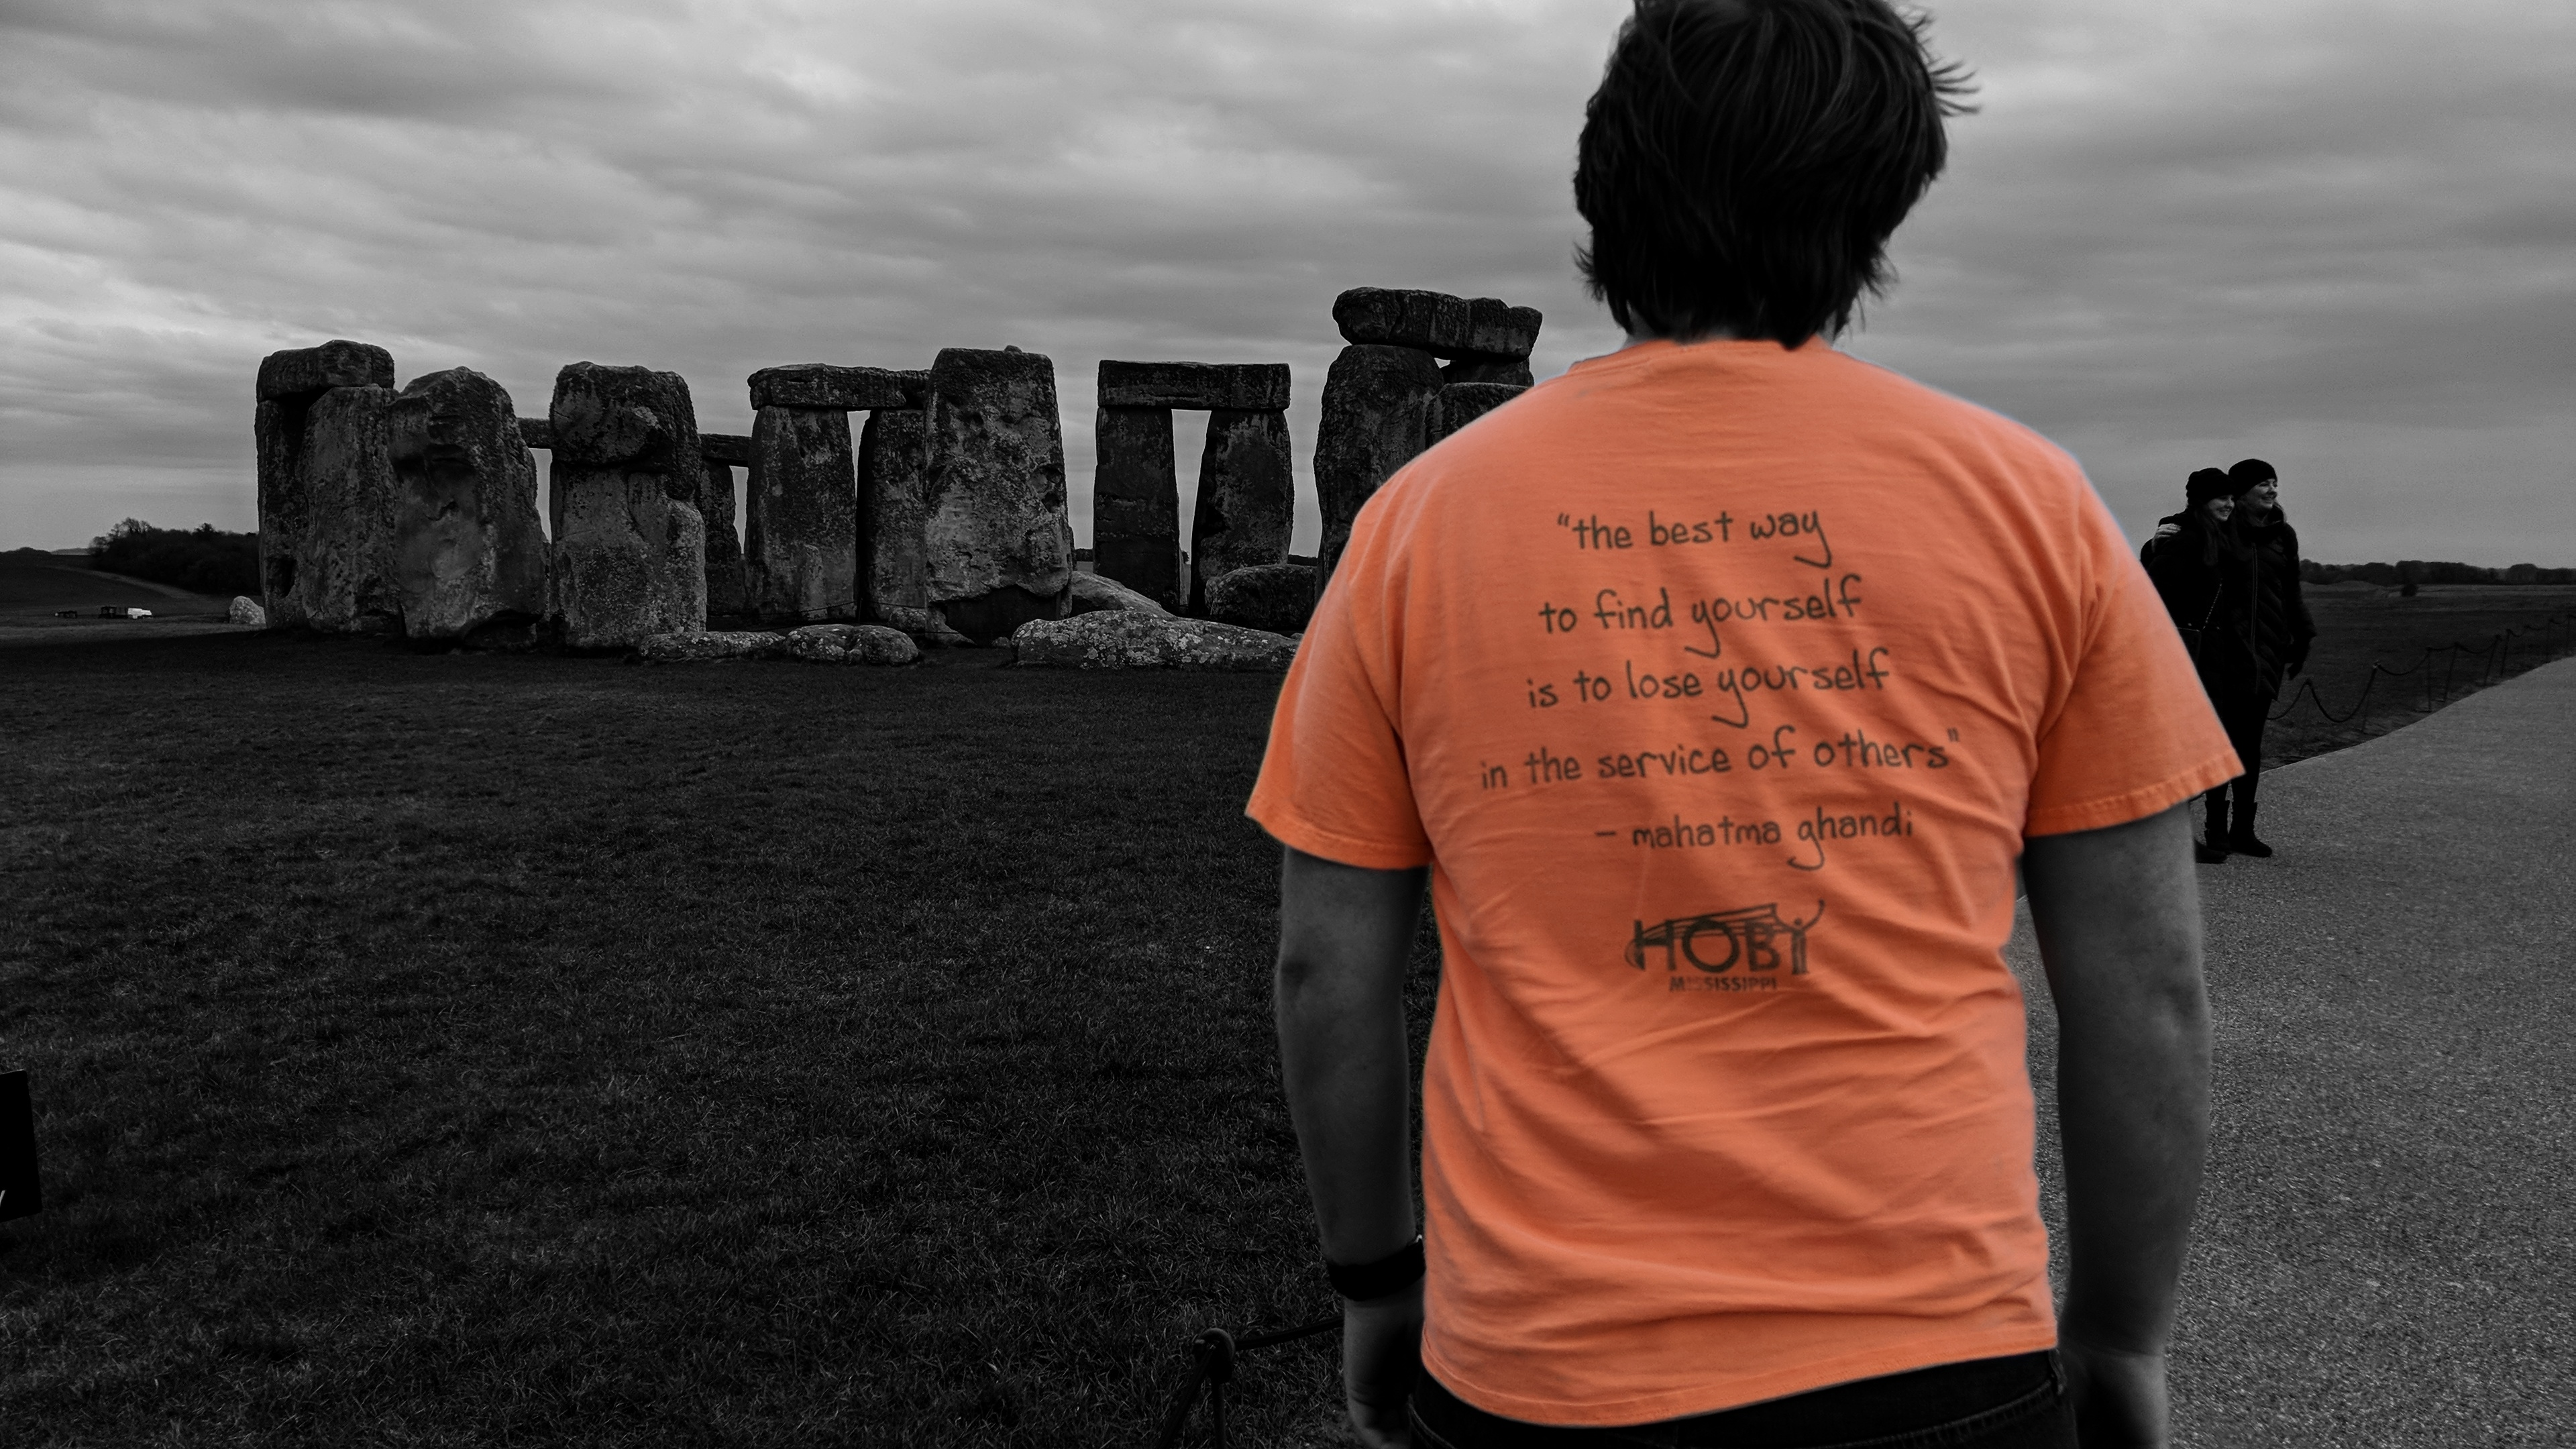 HOBY at Stonehenge